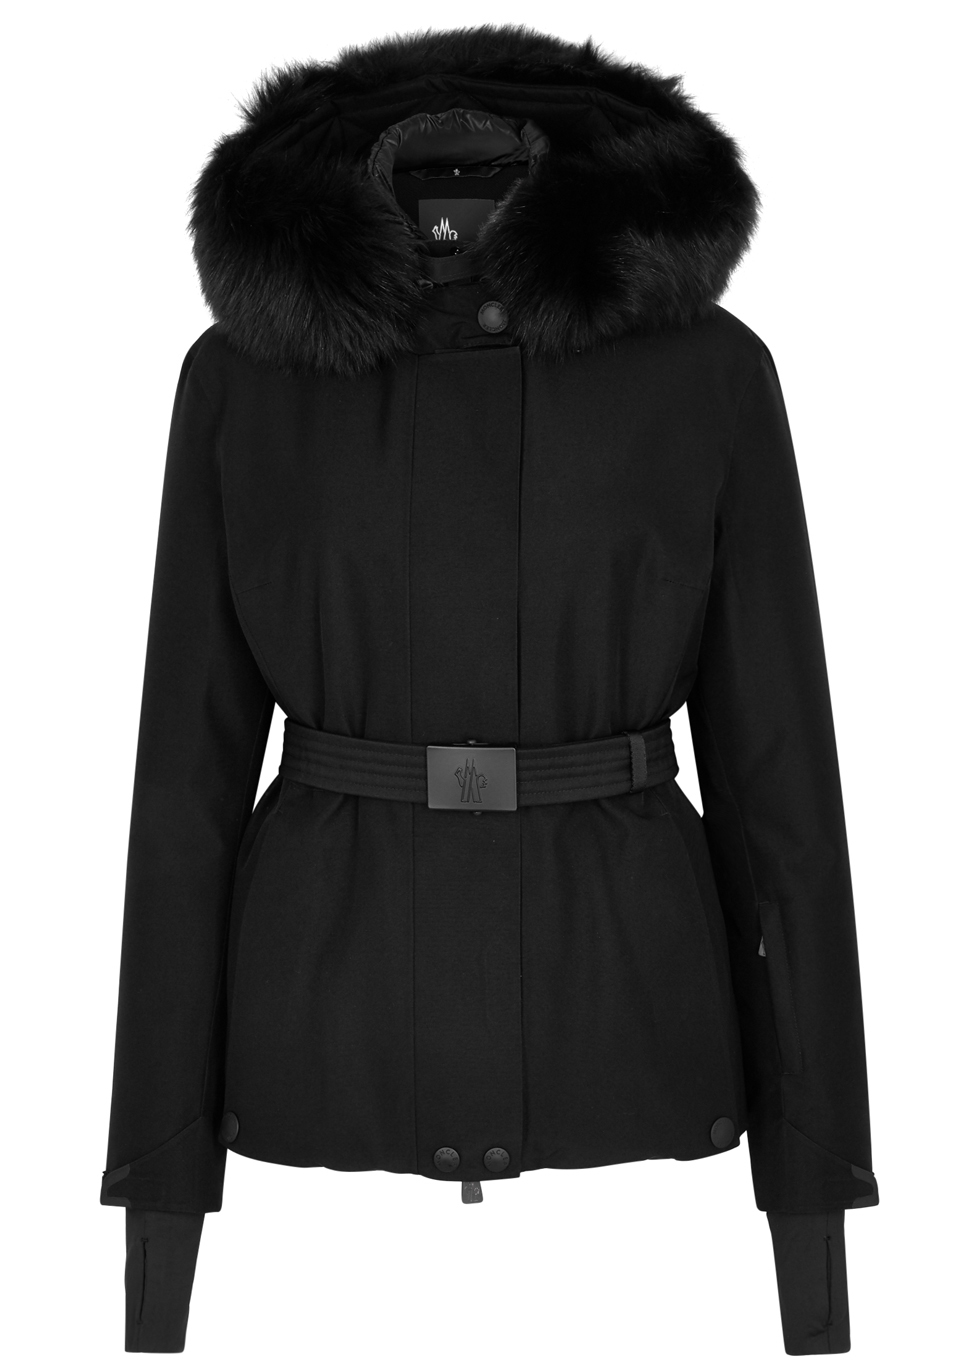 LAPLANCE FUR-TRIMMED NYLON JACKET